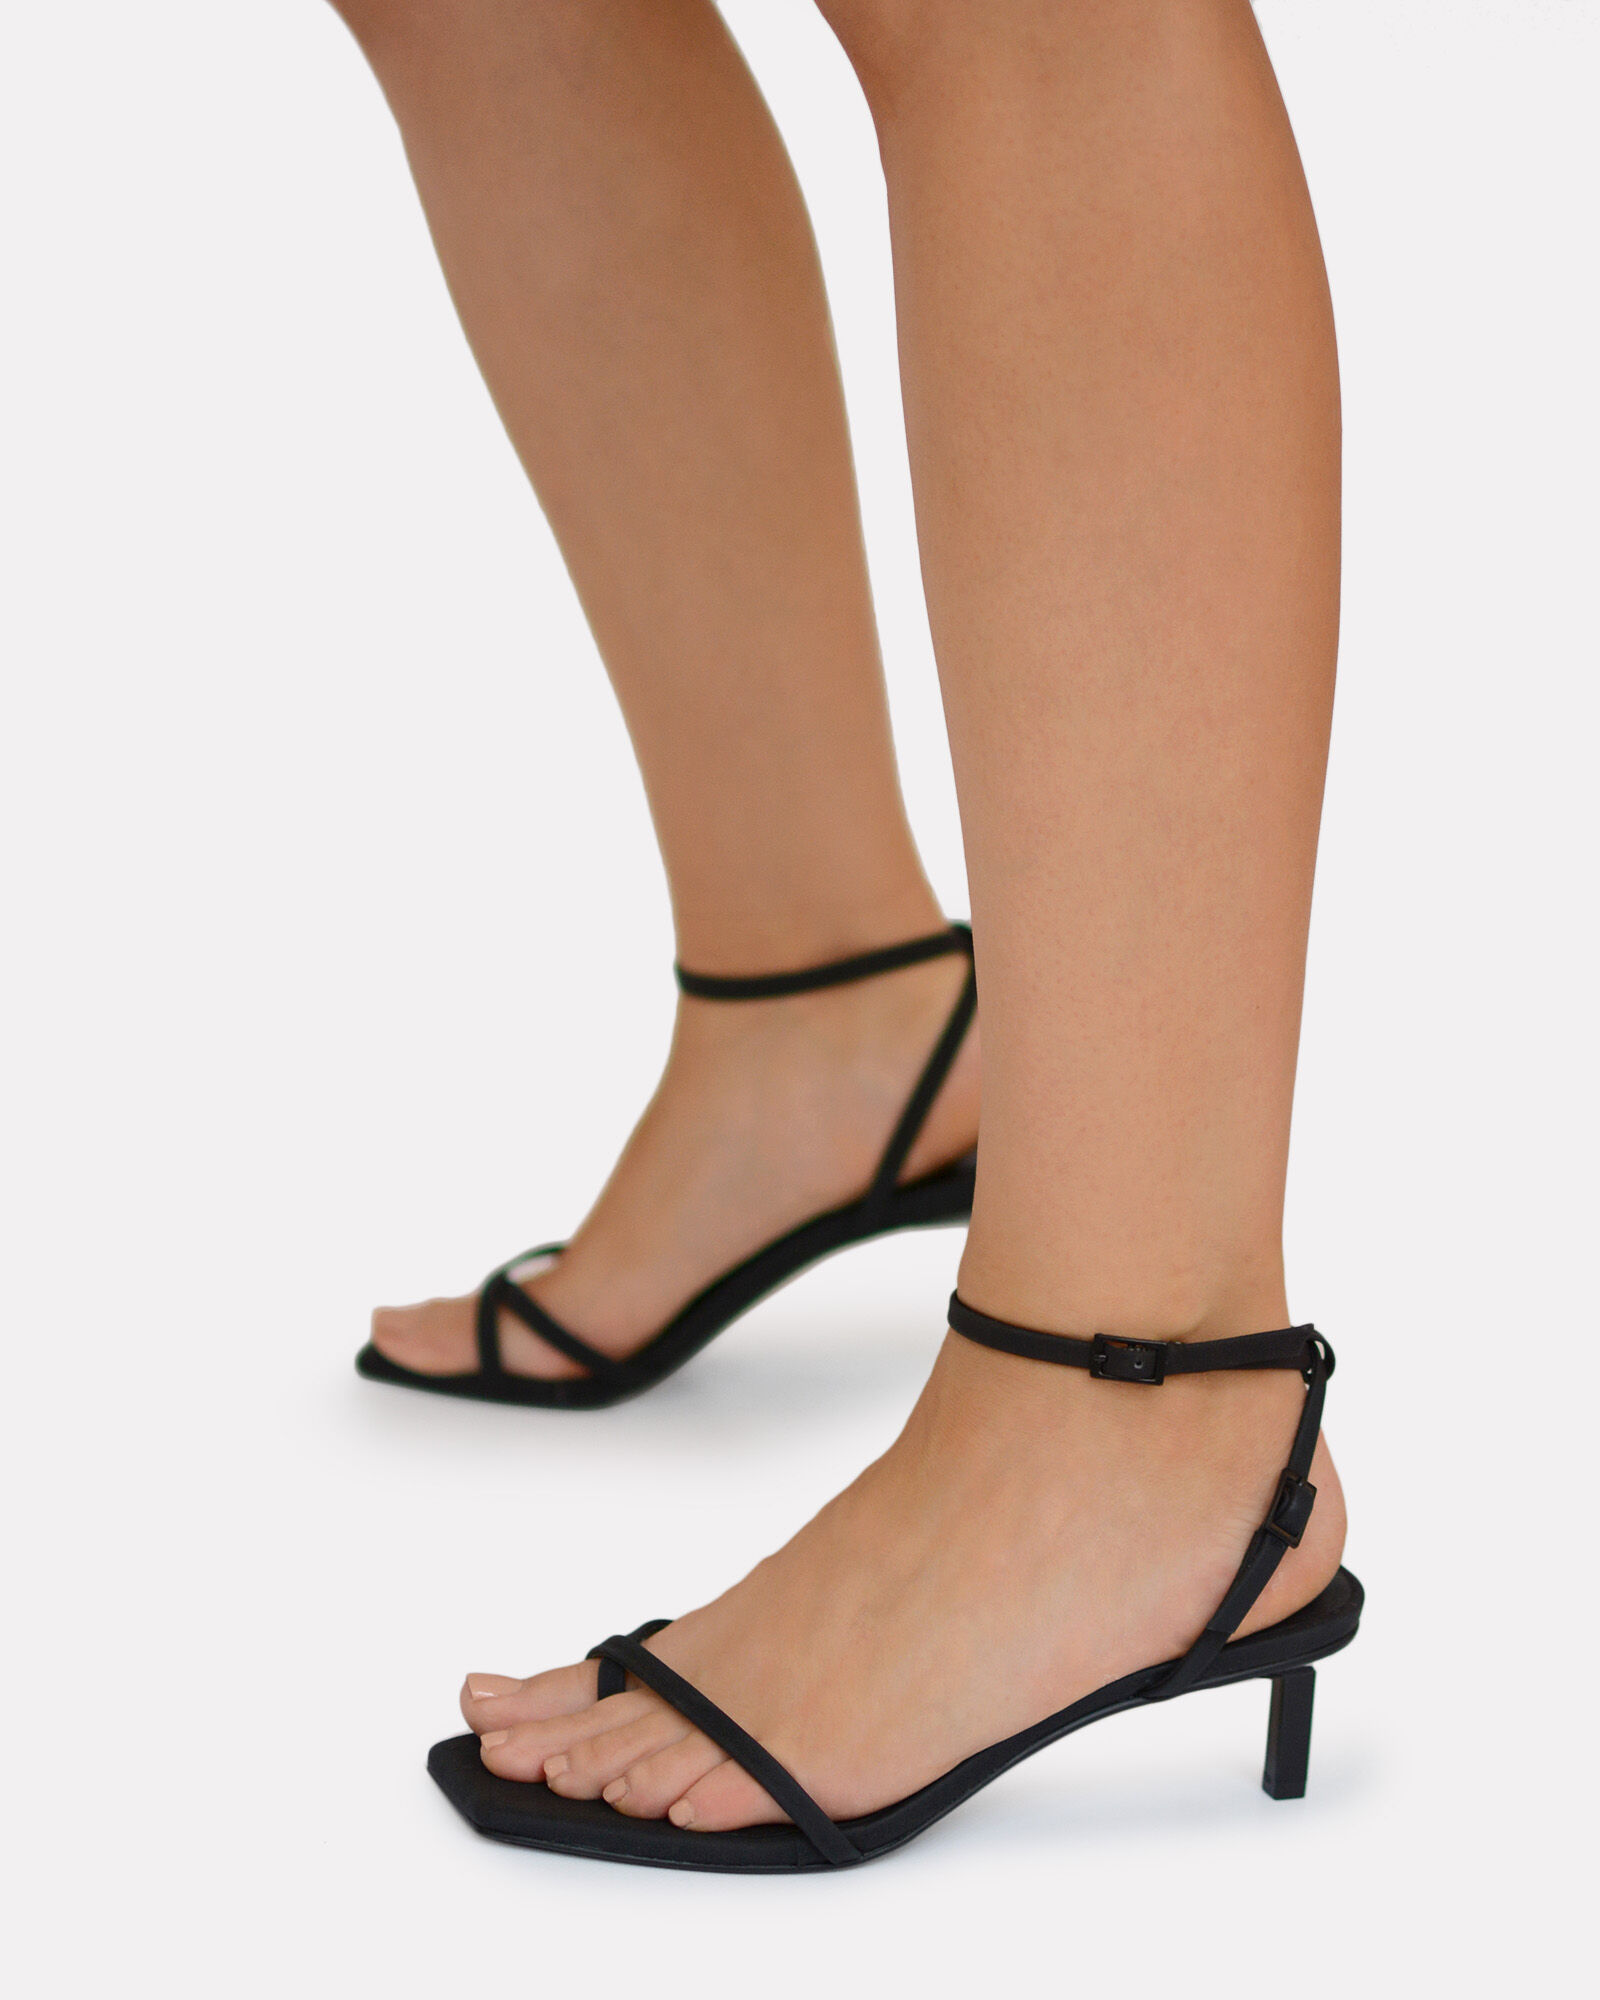 Jamu I Strappy Leather Sandals, BLACK, hi-res